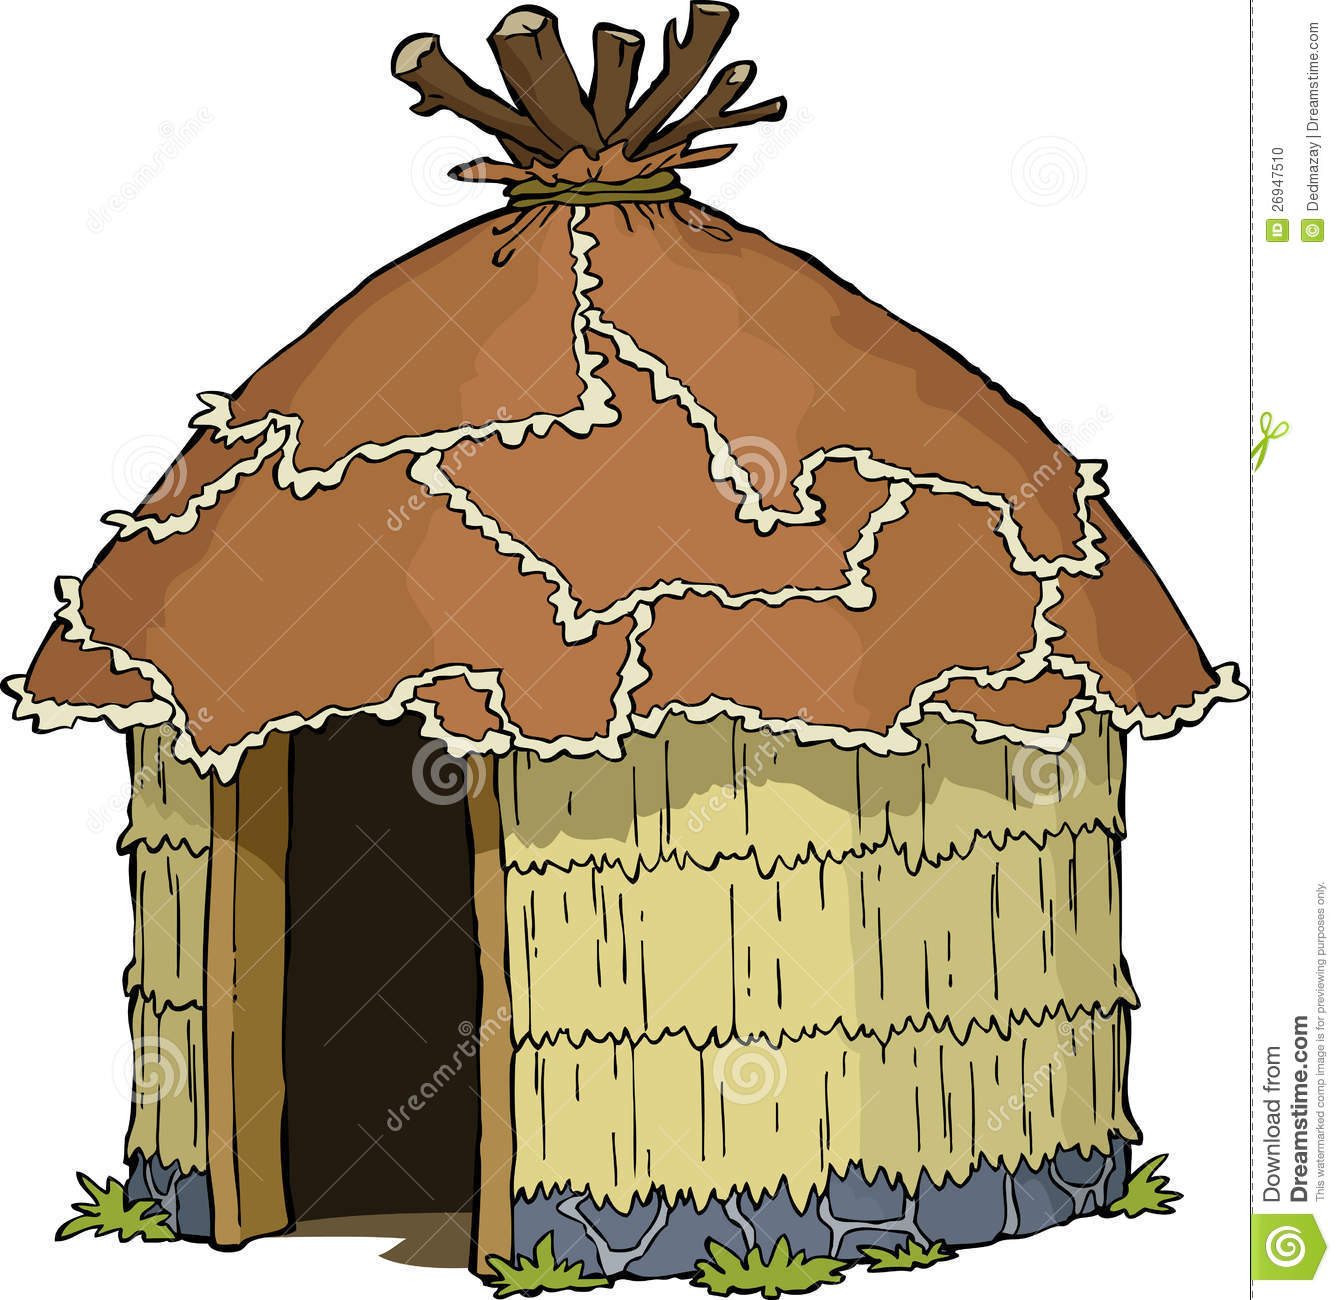 Indian huts clipart.